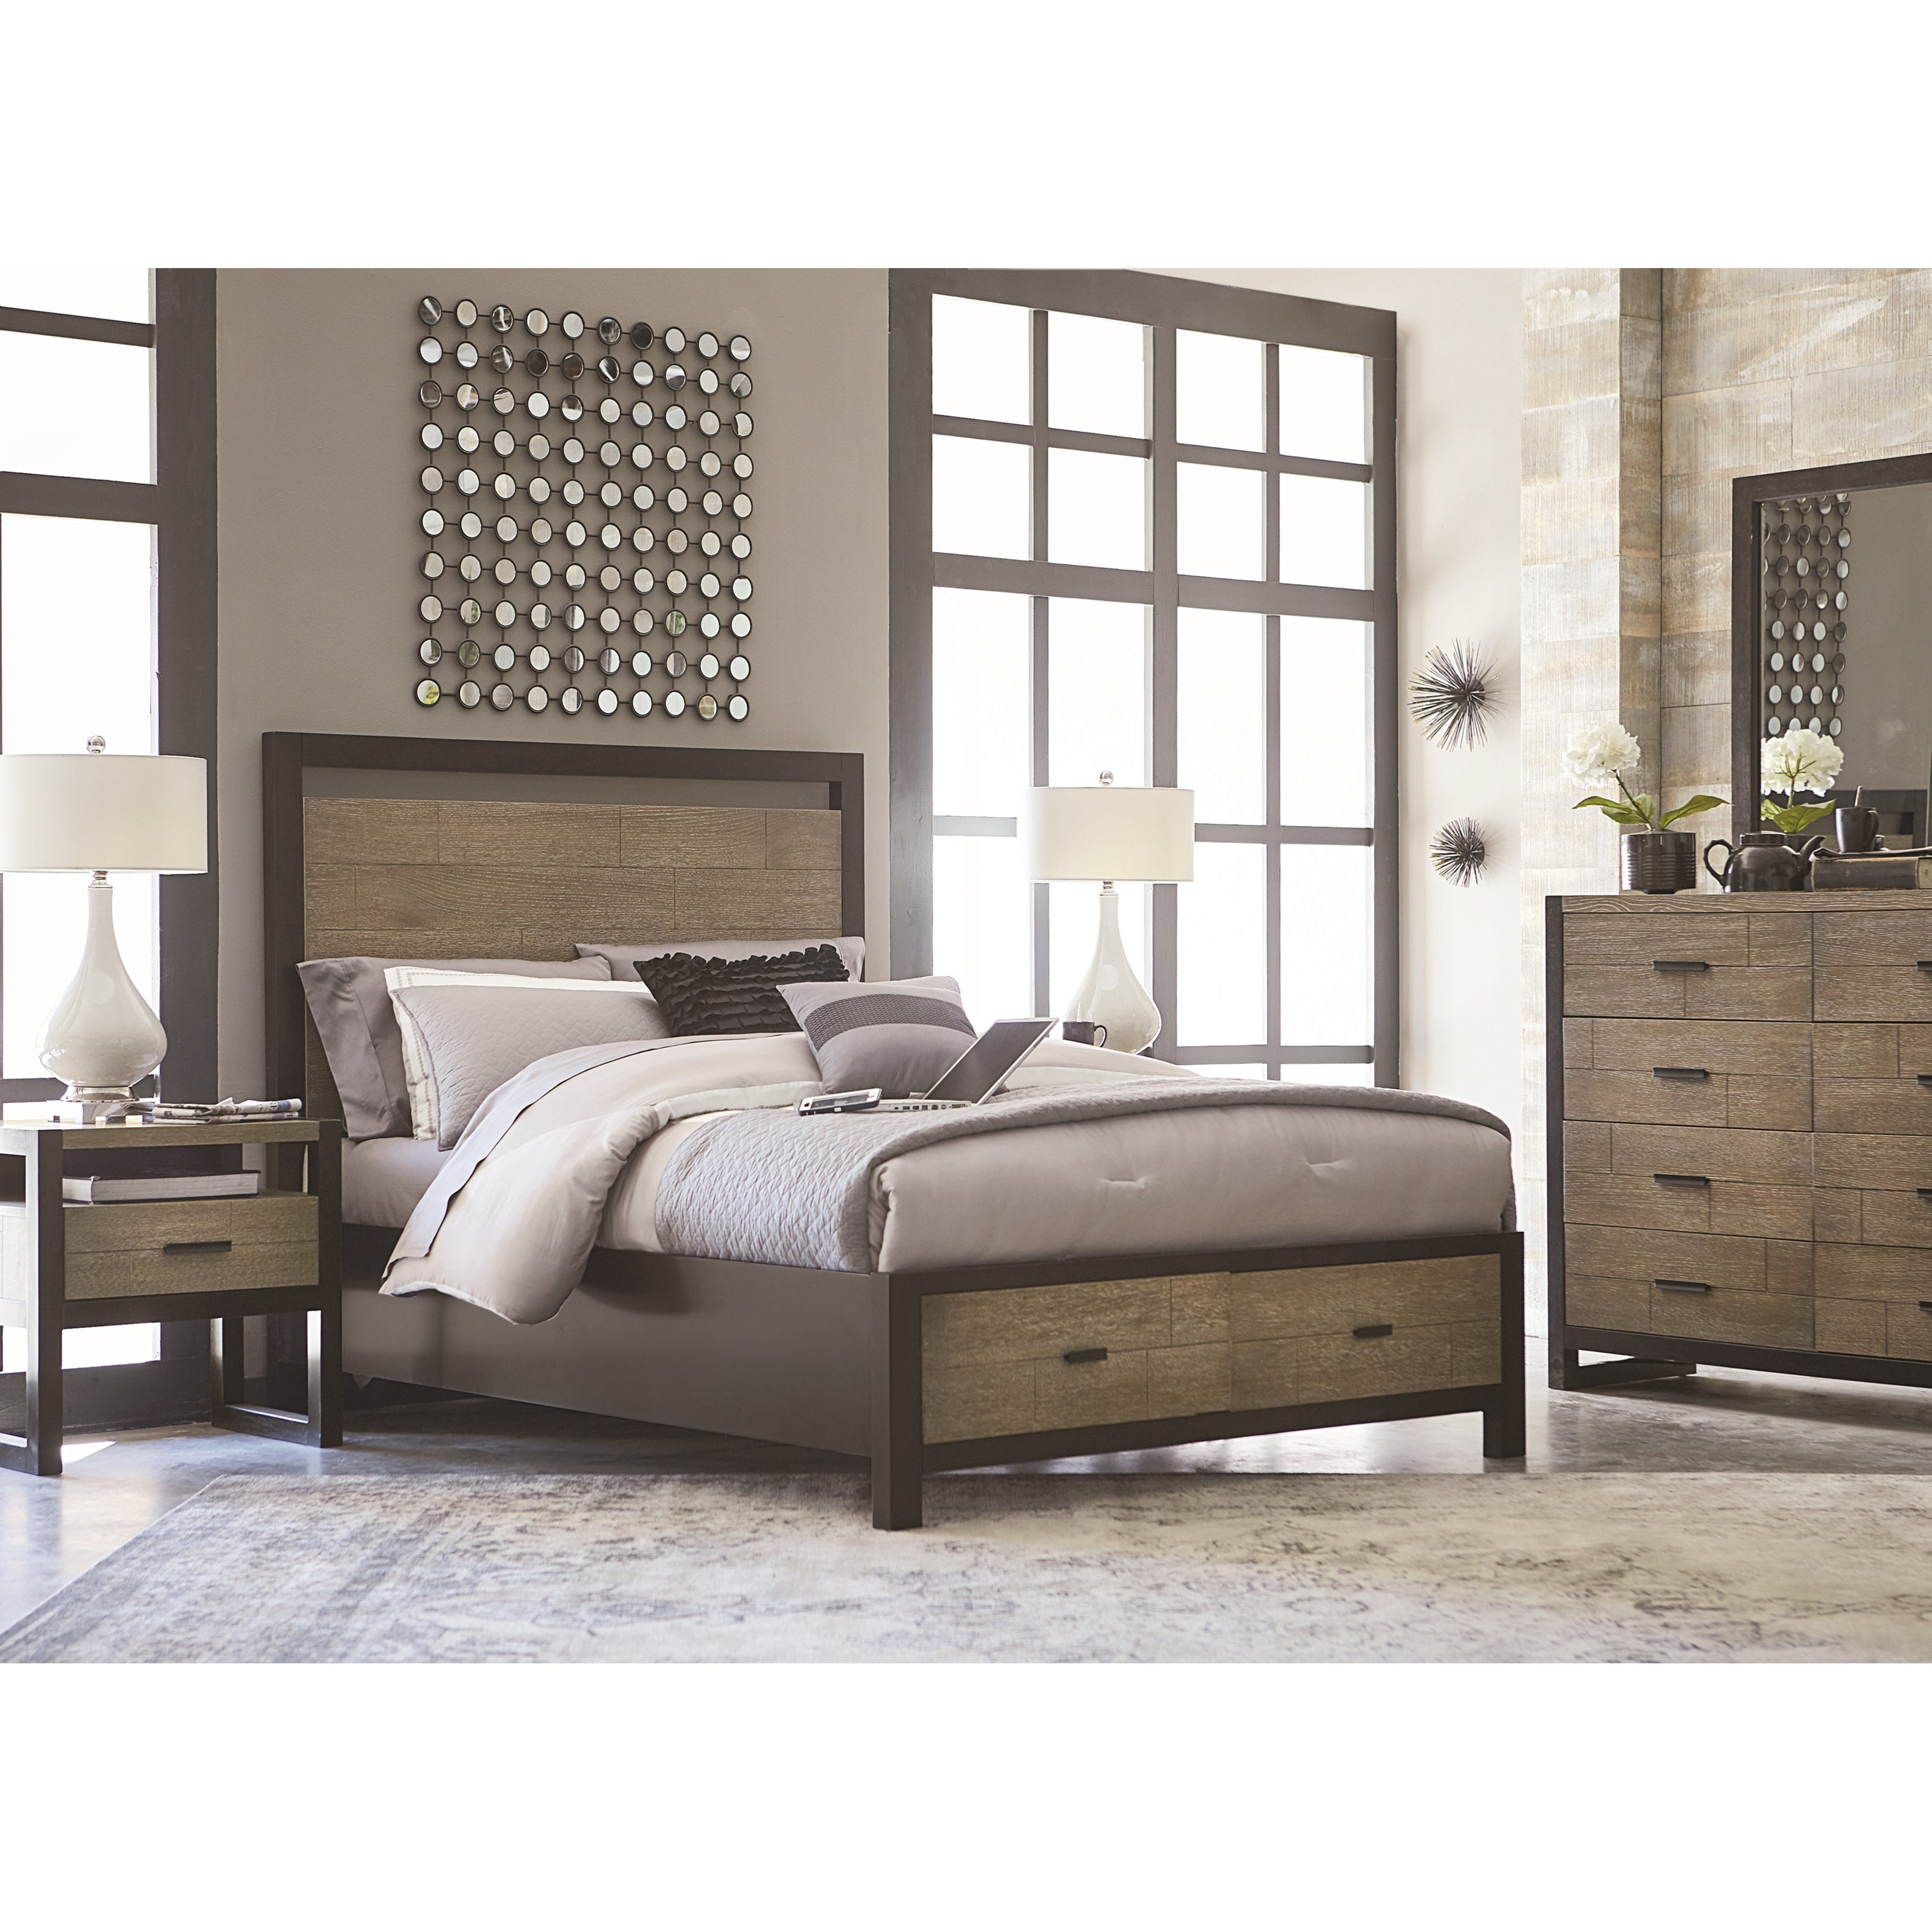 Legacy Classic Helix California King Bedroom Group 1 Dunk & Bright Furn